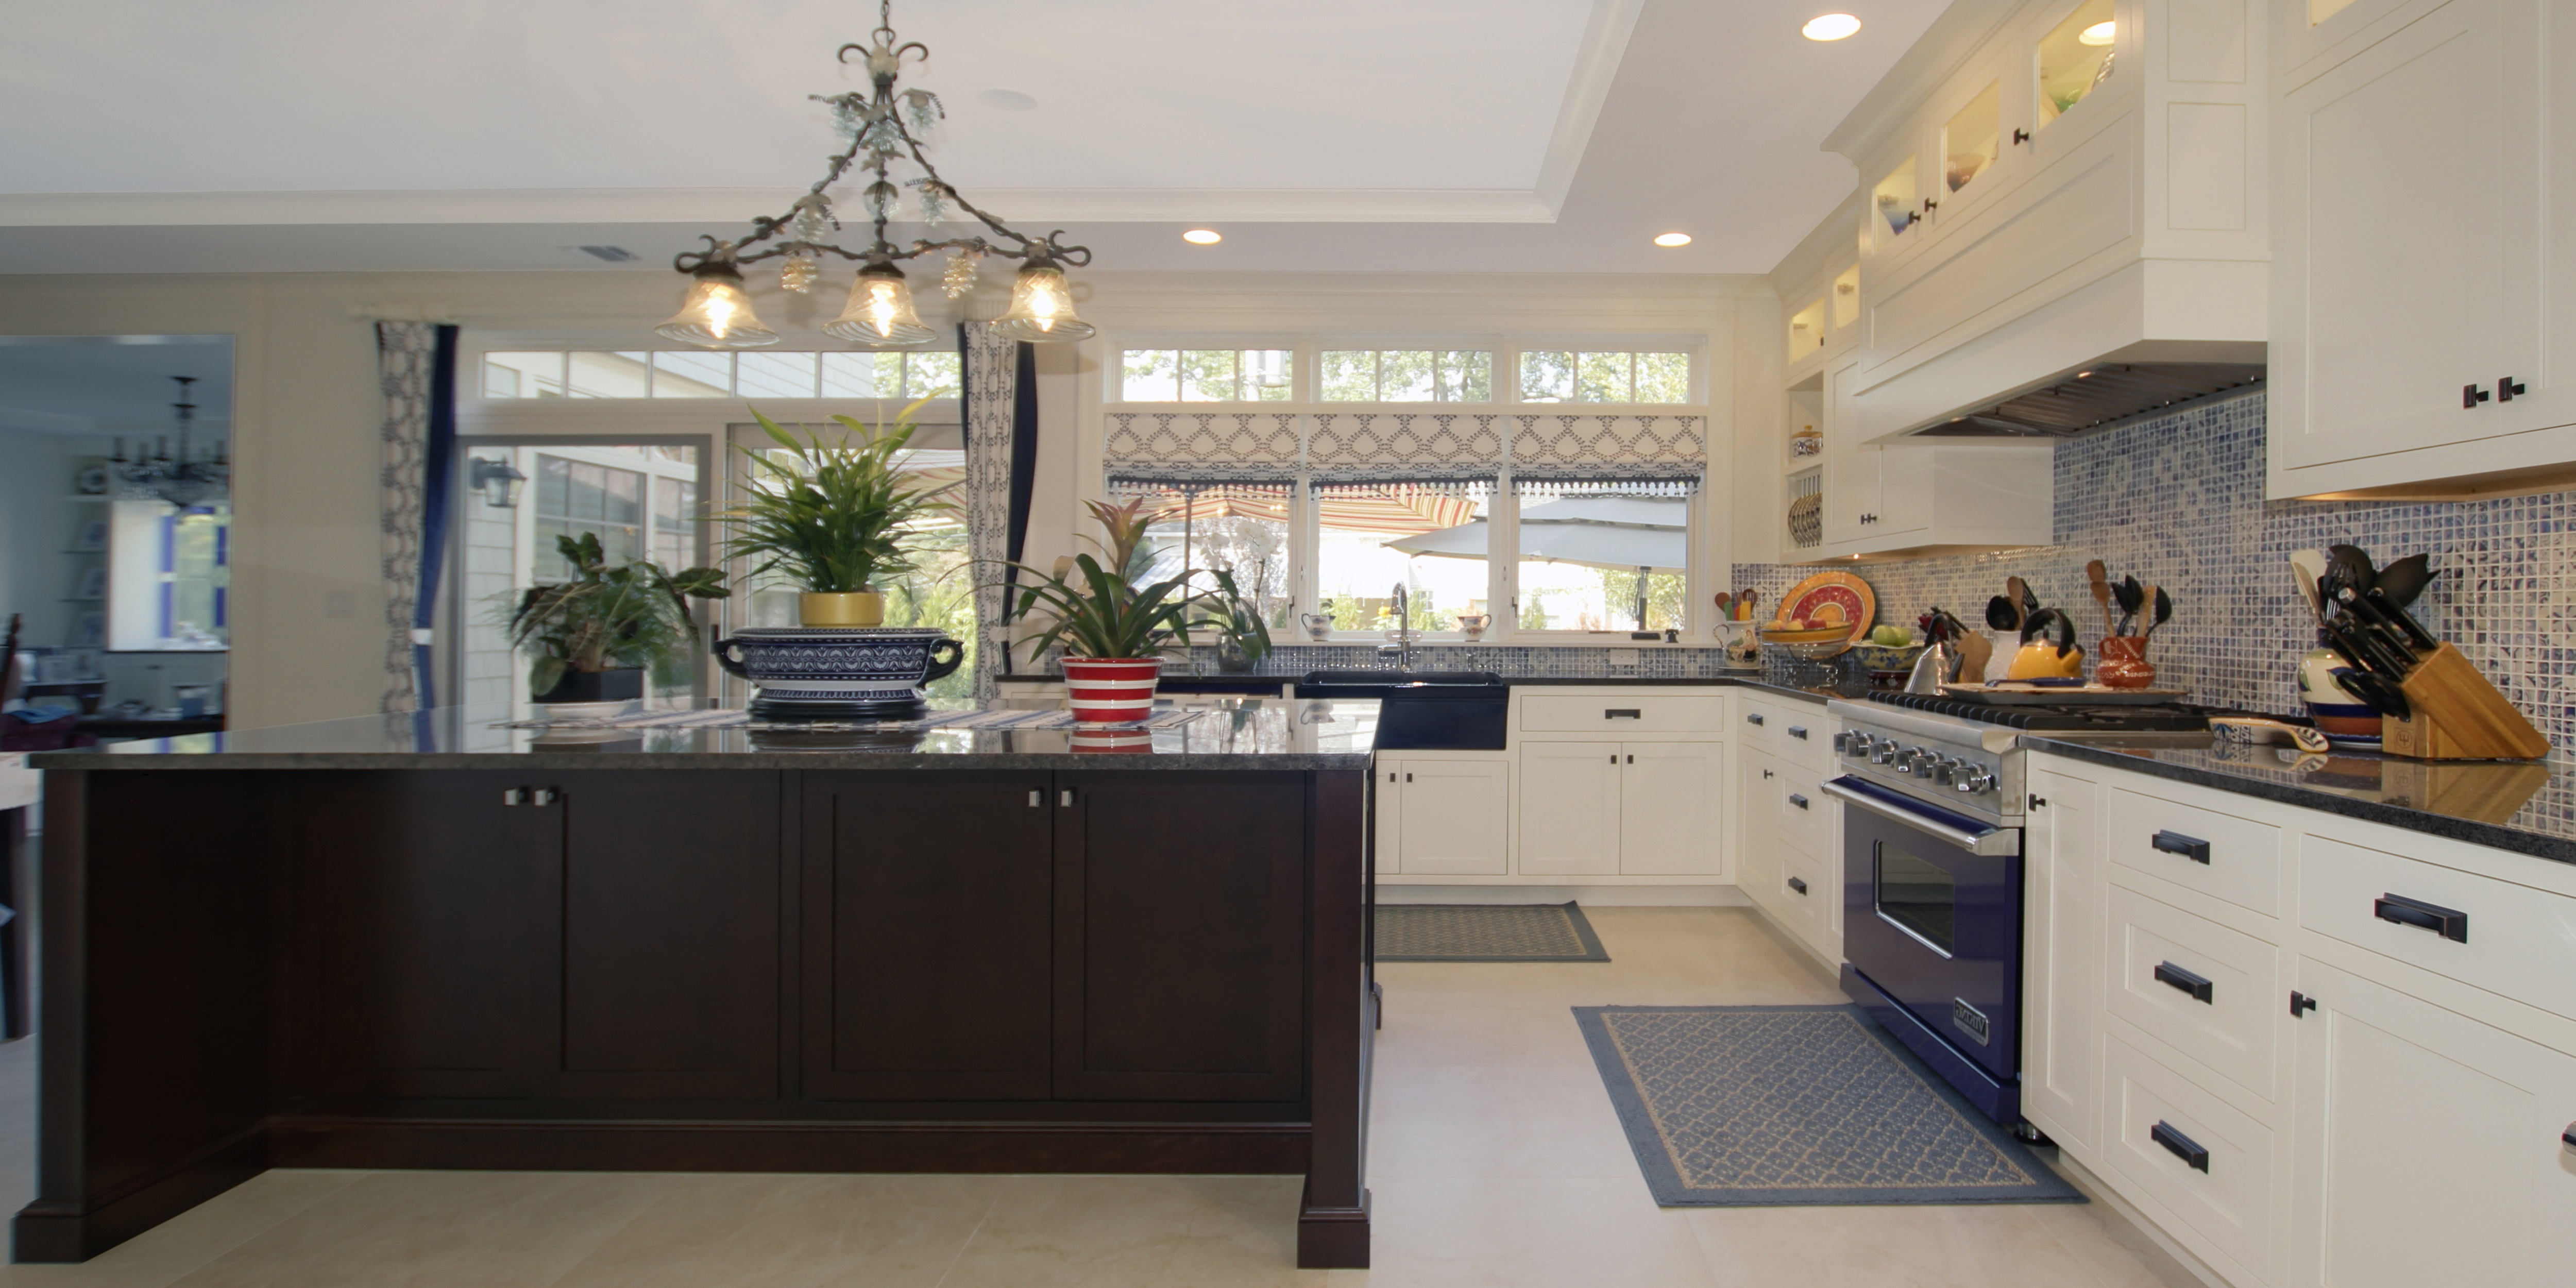 Kitchen cabinets in flushing ny 100 kitchen cabinets in for Kitchen cabinets queens